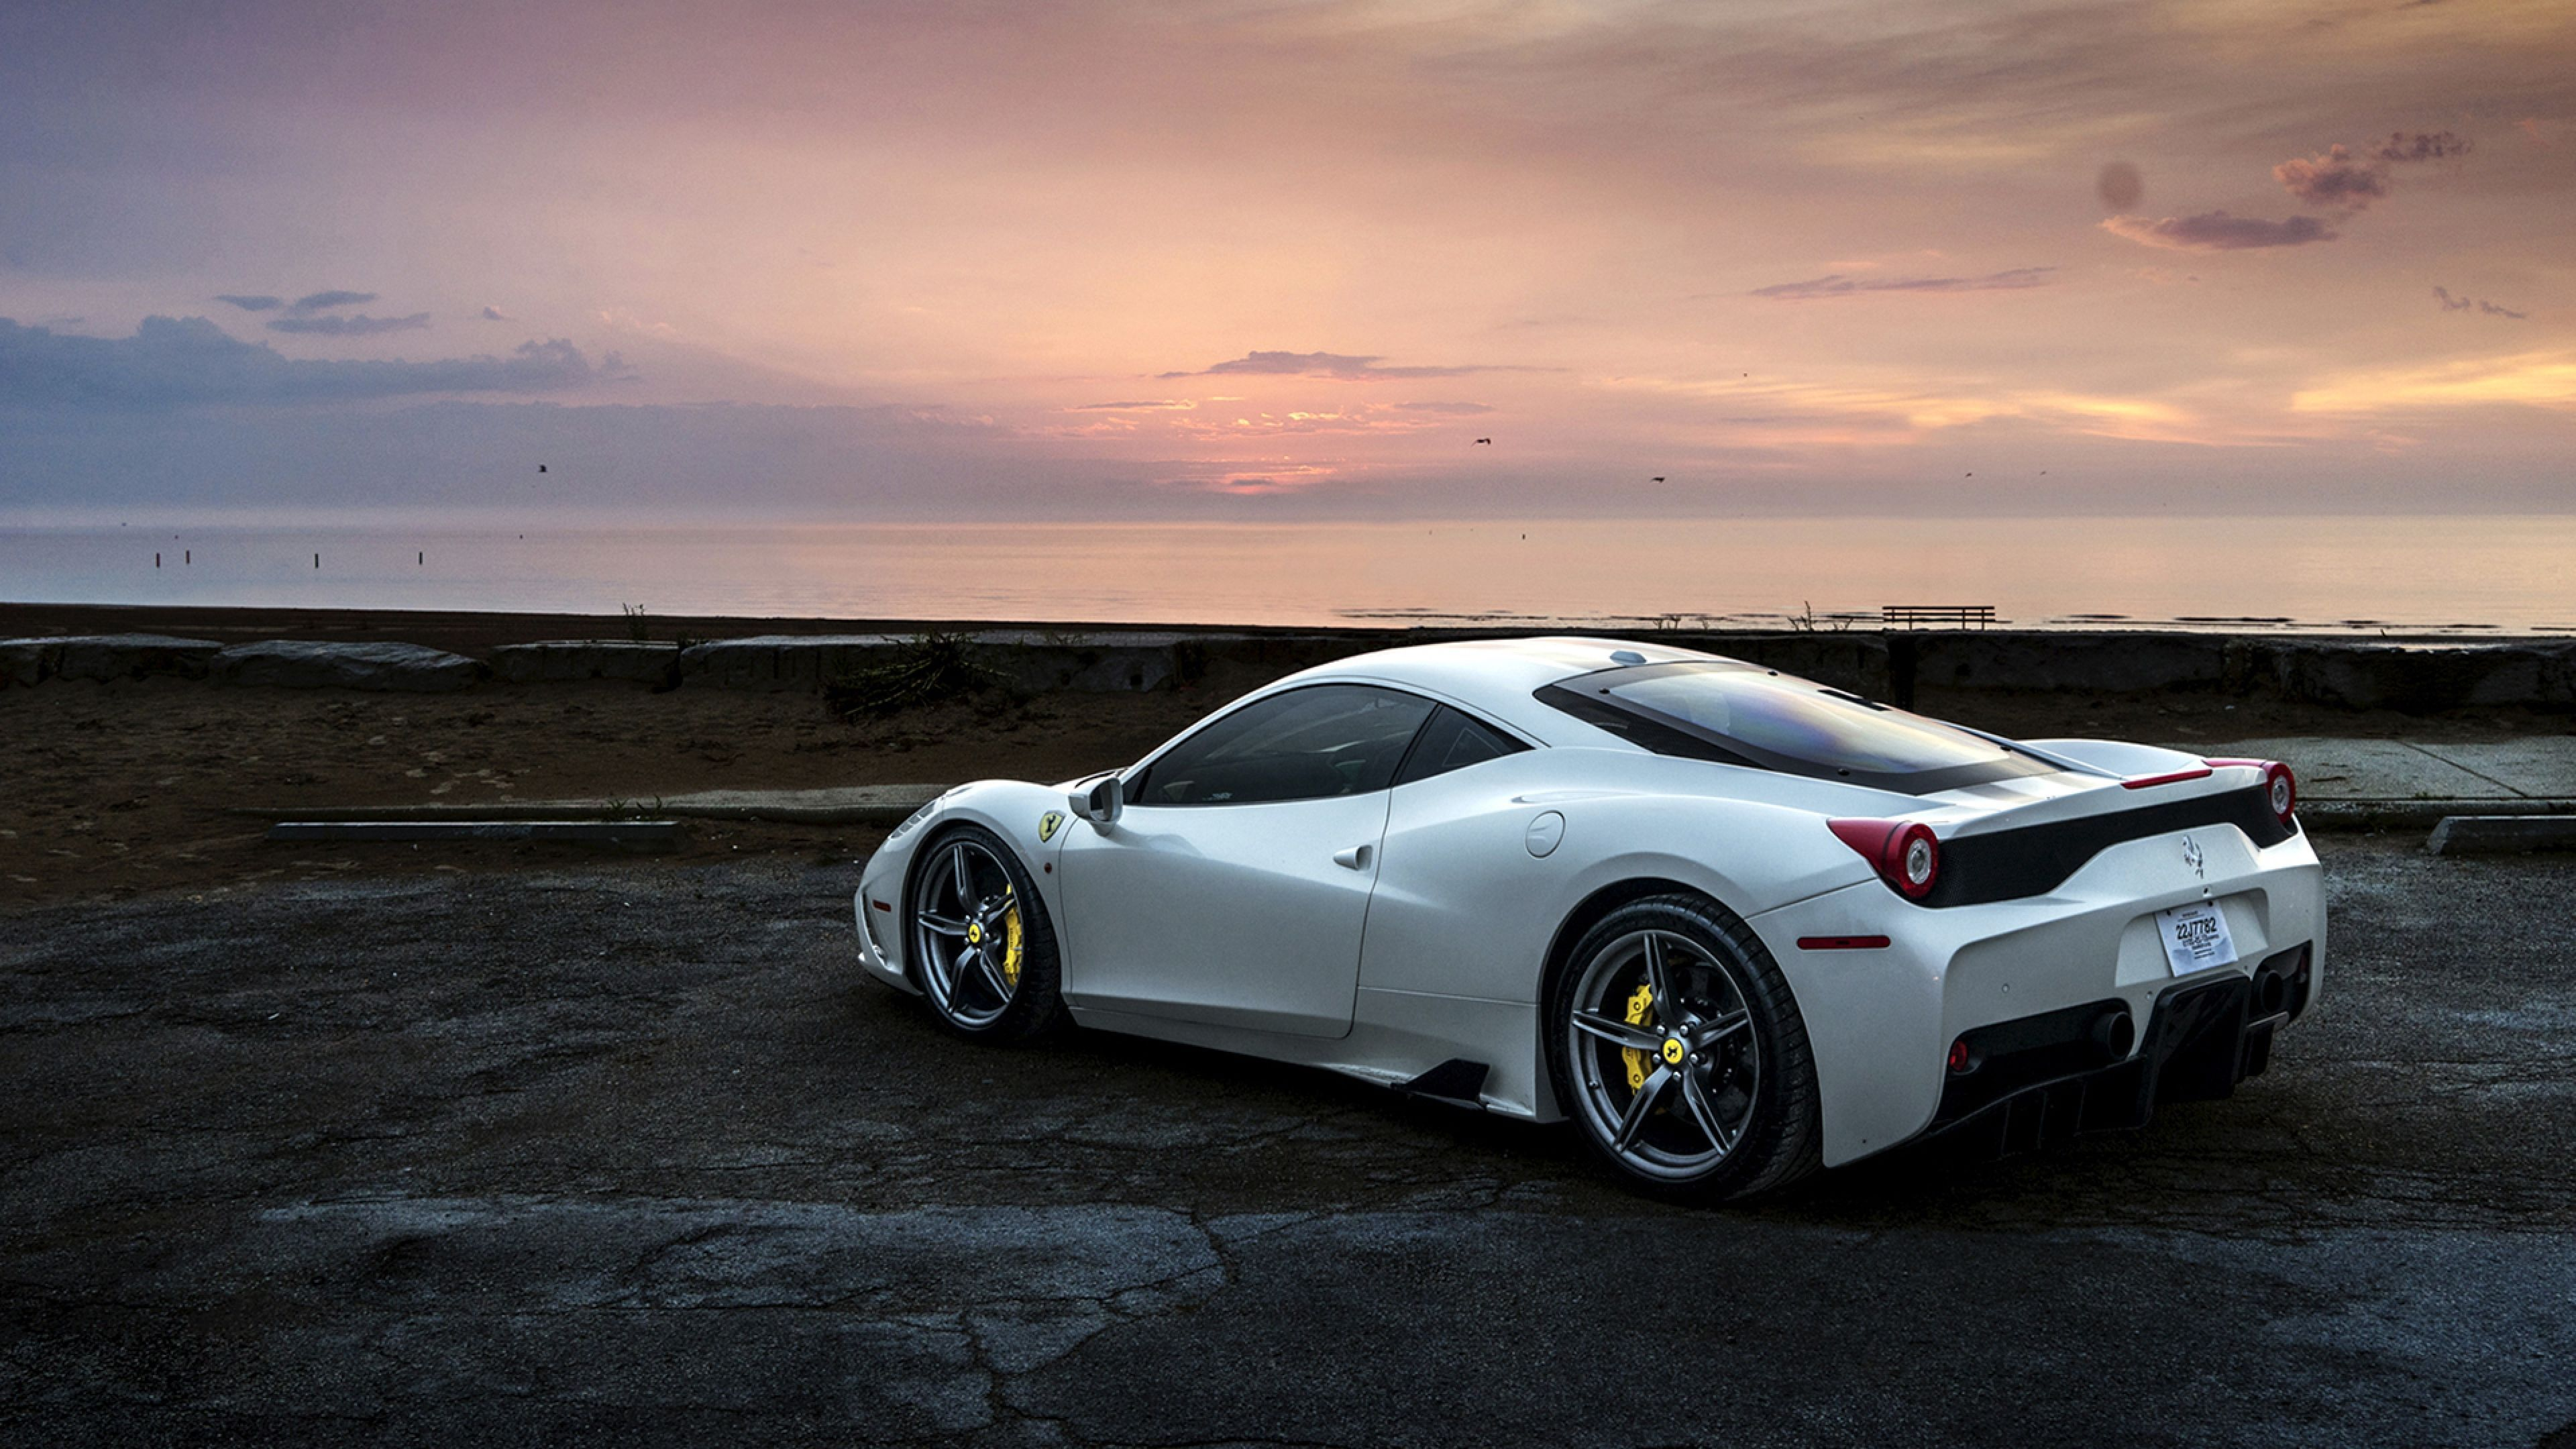 White Ferrari Wallpapers Top Free White Ferrari Backgrounds Wallpaperaccess